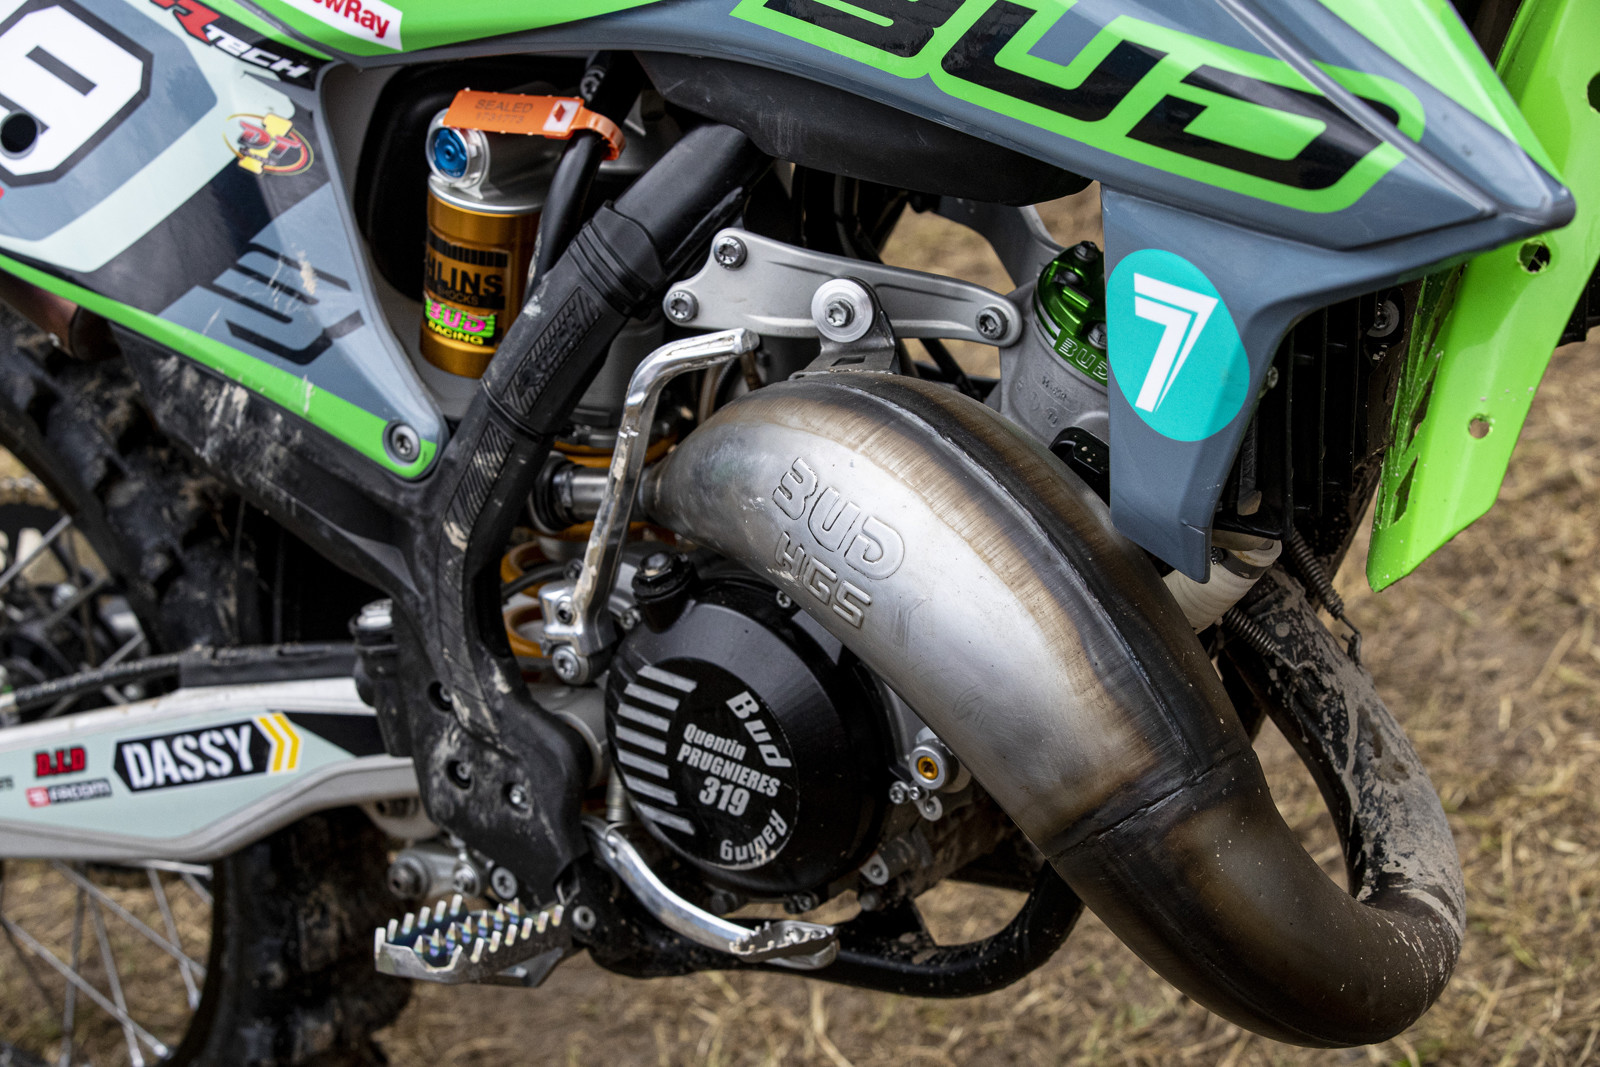 A quick second look shows that this green machine is a KTM 125 SX in disguise.